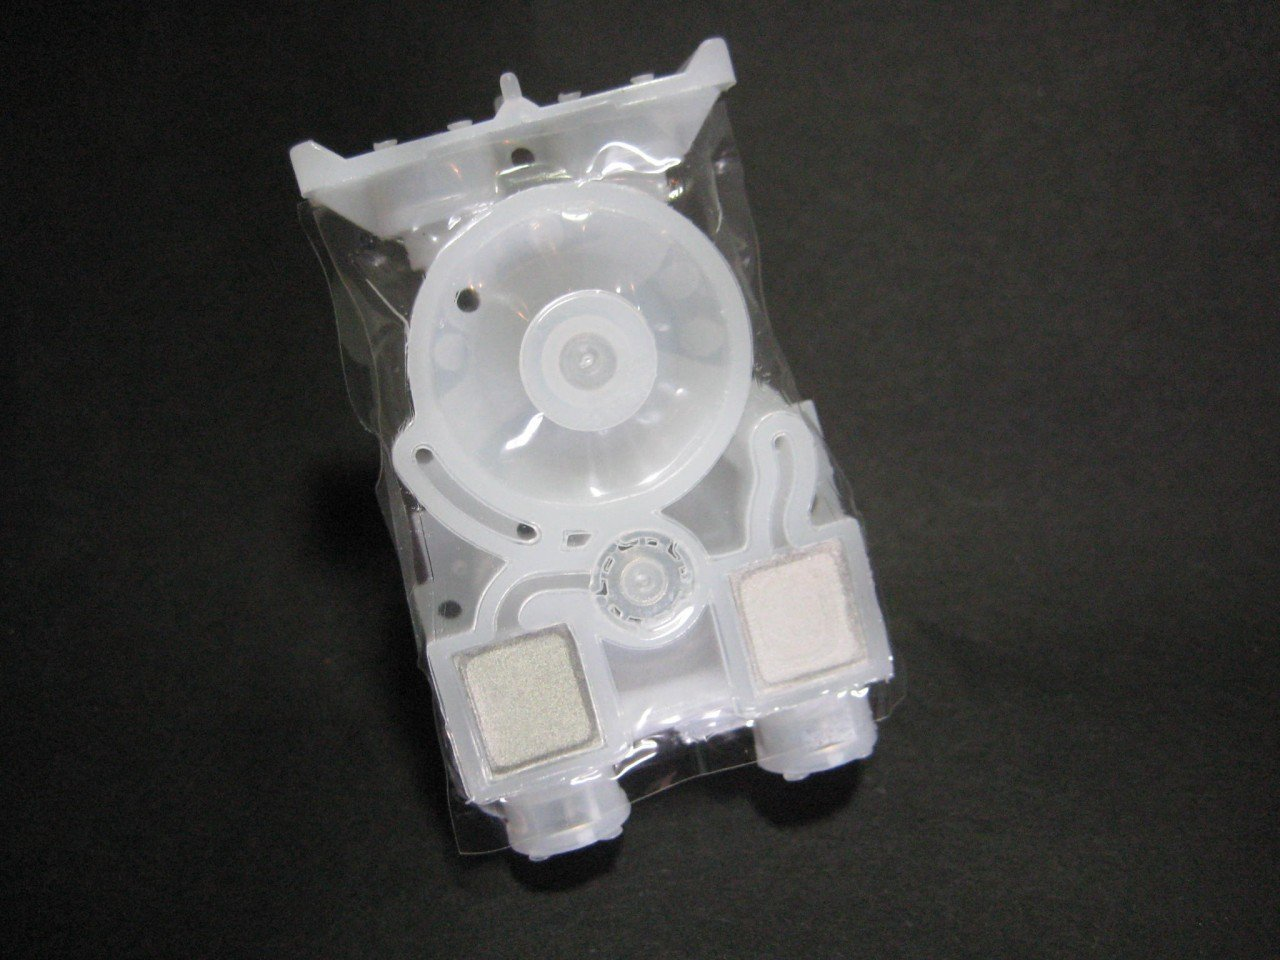 COMPATIBLE DAMPER FOR EPSON Stylus Pro 7890, 7700, 7900, 9700, 9890, 9900